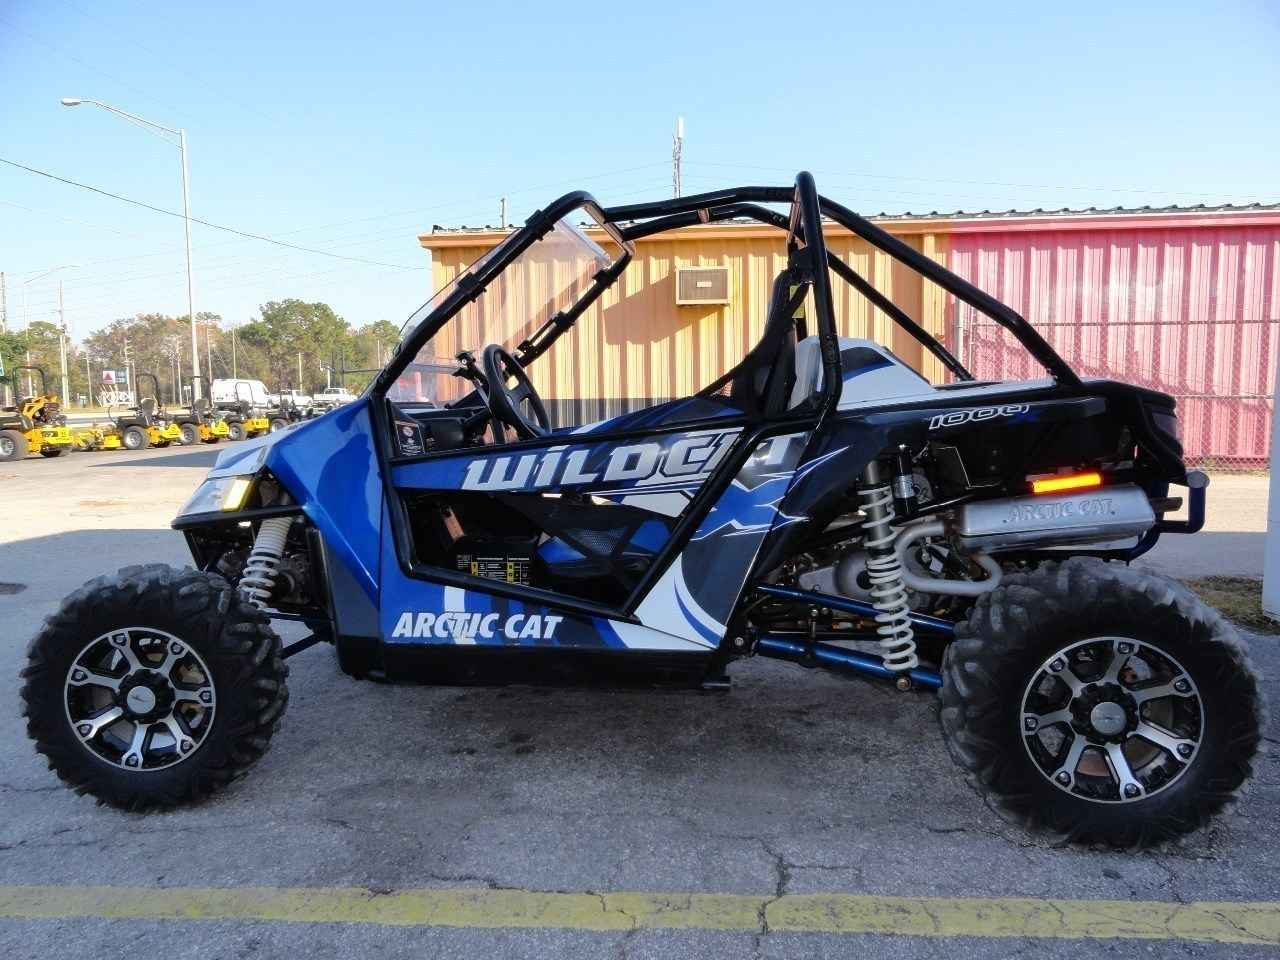 Used 2014 Arctic Cat WILDCAT X ATVs For Sale in Florida on ATV Trades